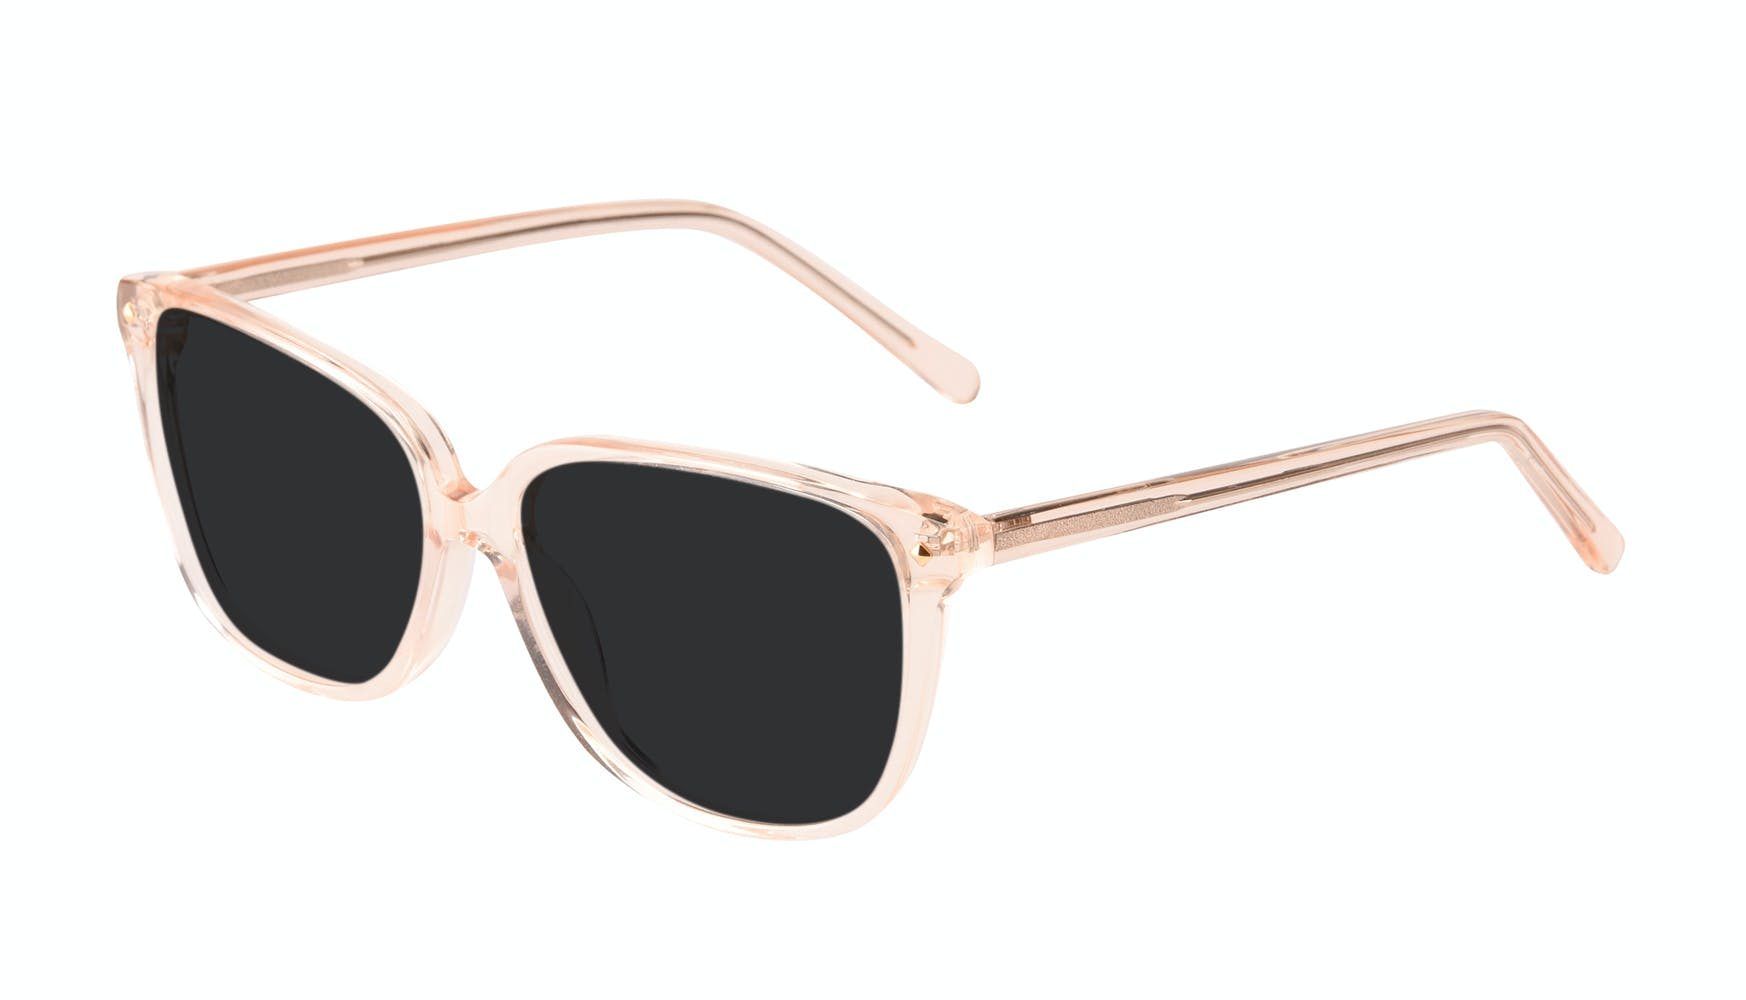 Affordable Fashion Glasses Rectangle Square Sunglasses Women Muse Blond Tilt